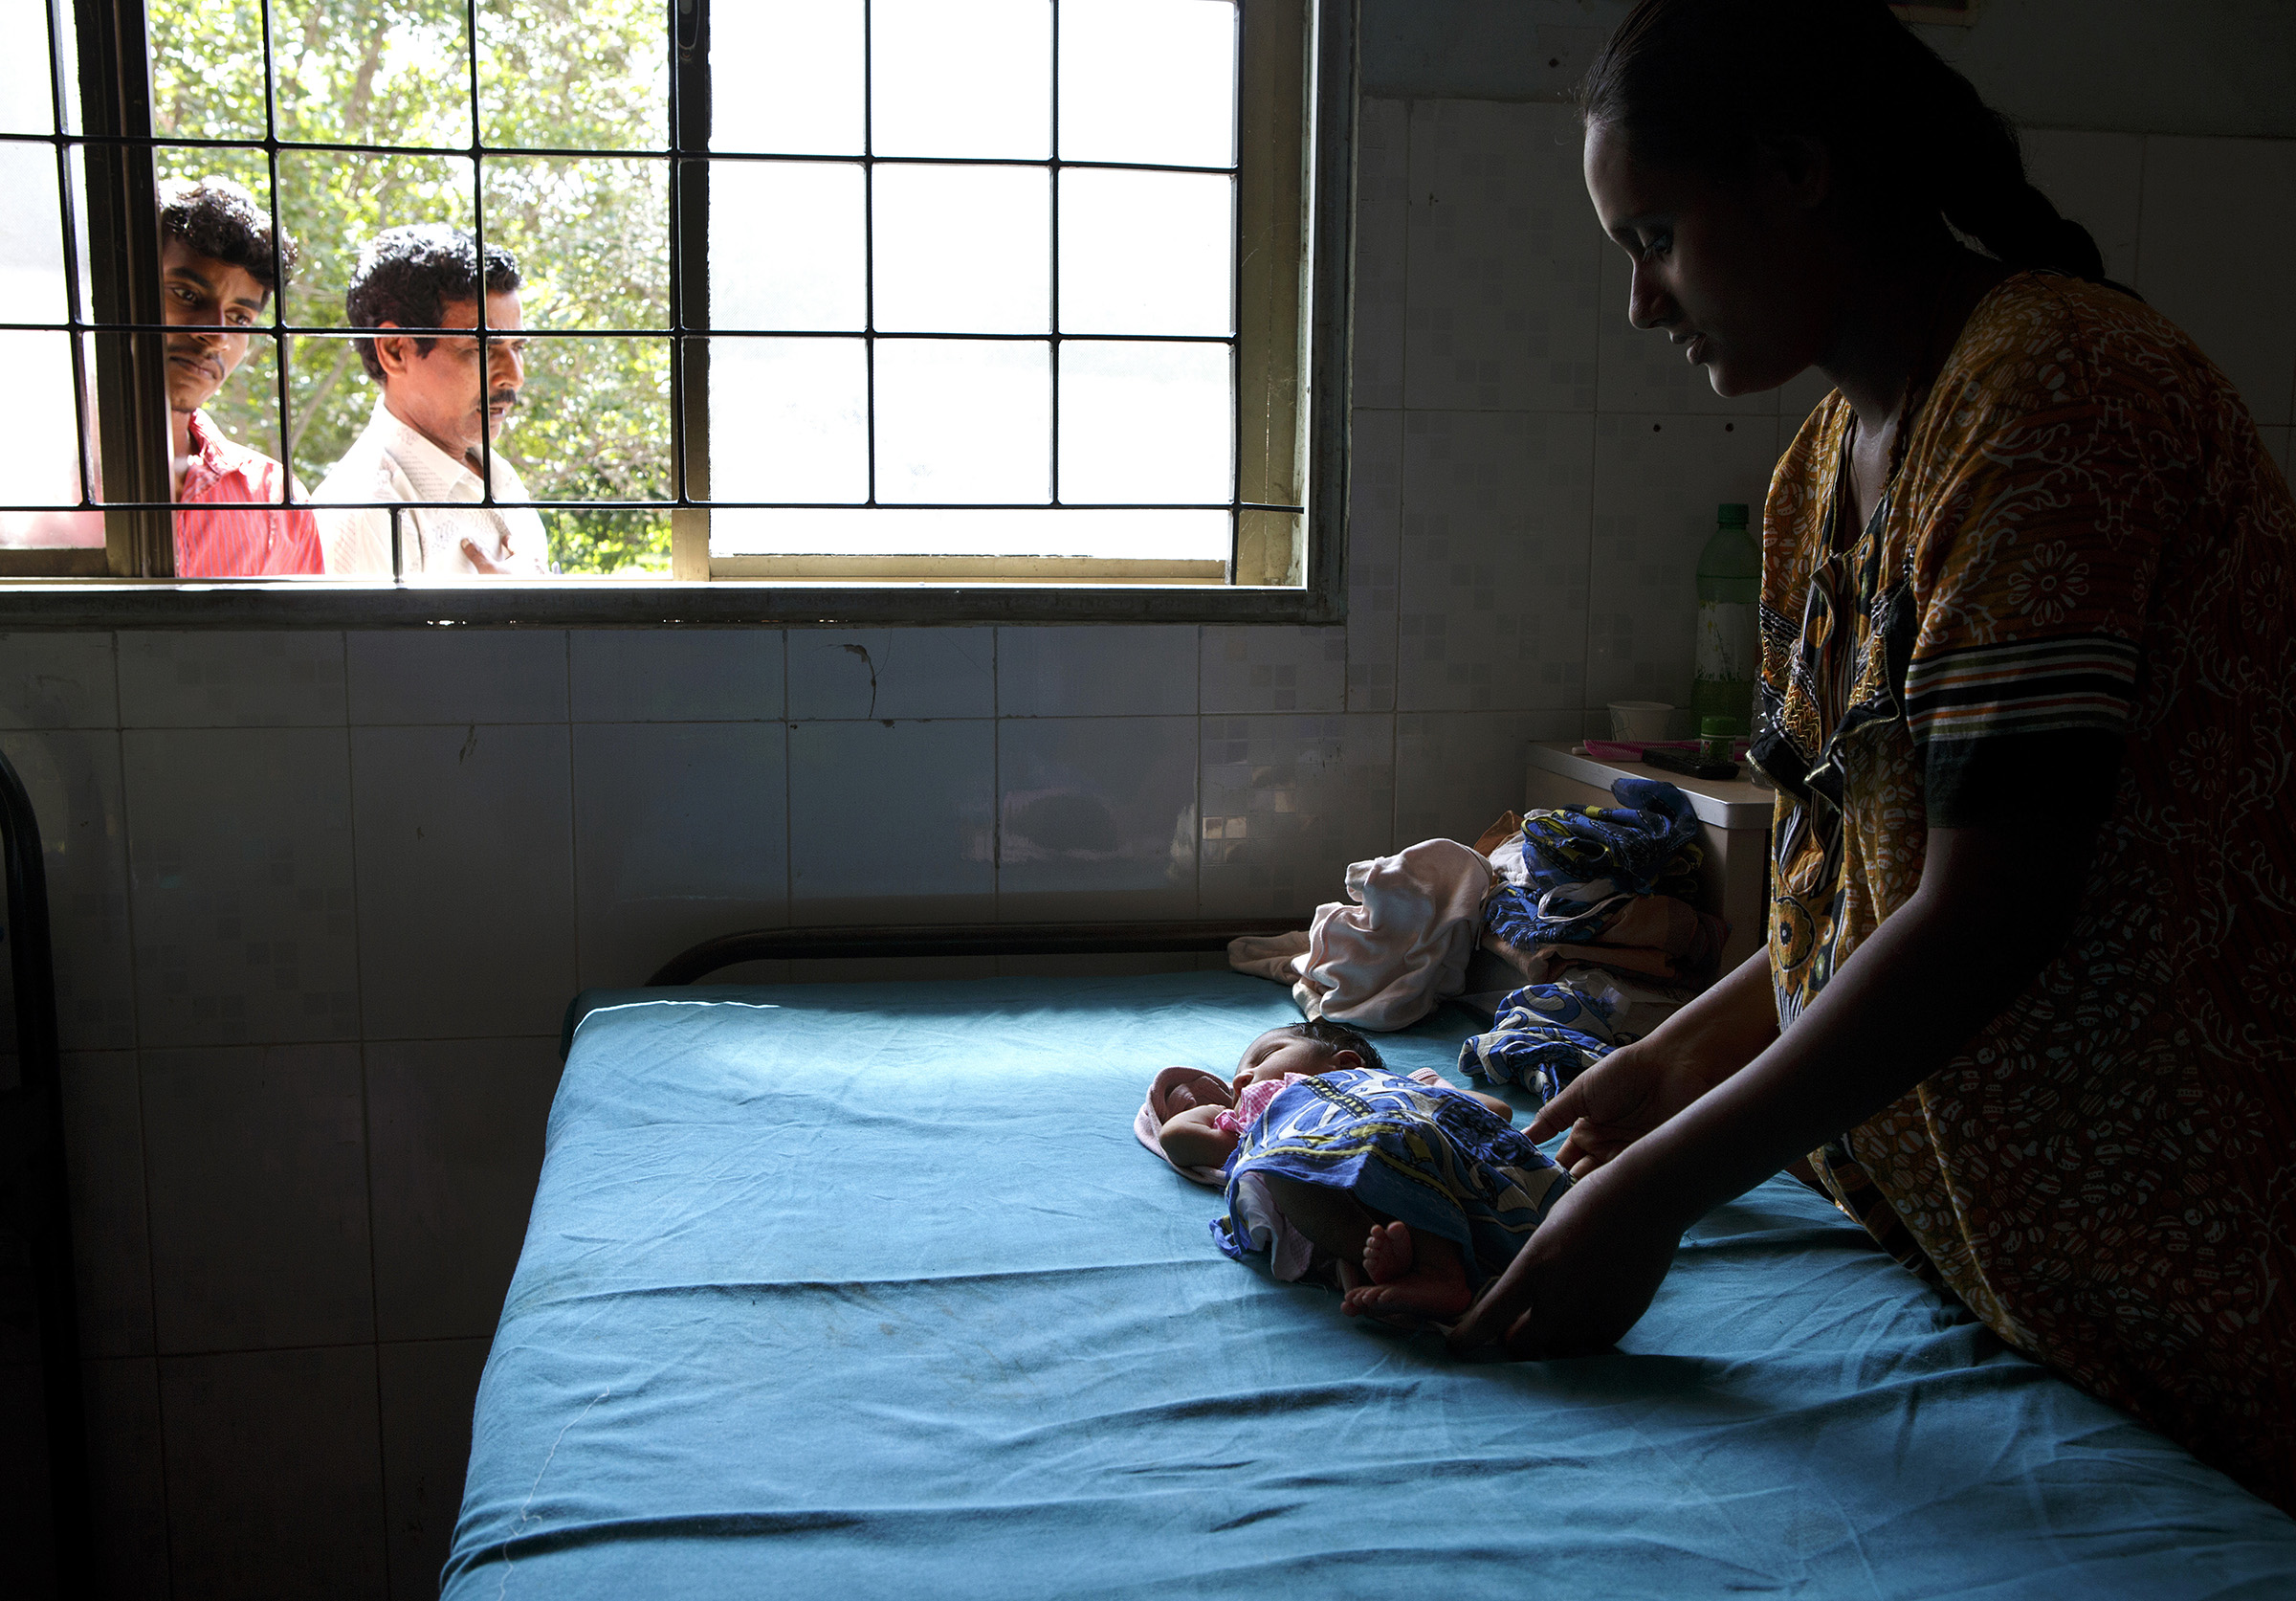 B. Rajeshwari, 23, cares for her first child, a 5-day-old daughter not yet named, at the Medavakkam Primary Health Centre in Tamil Nadu. A family friend, Radish, far left, looks on.   SARAH WEISER